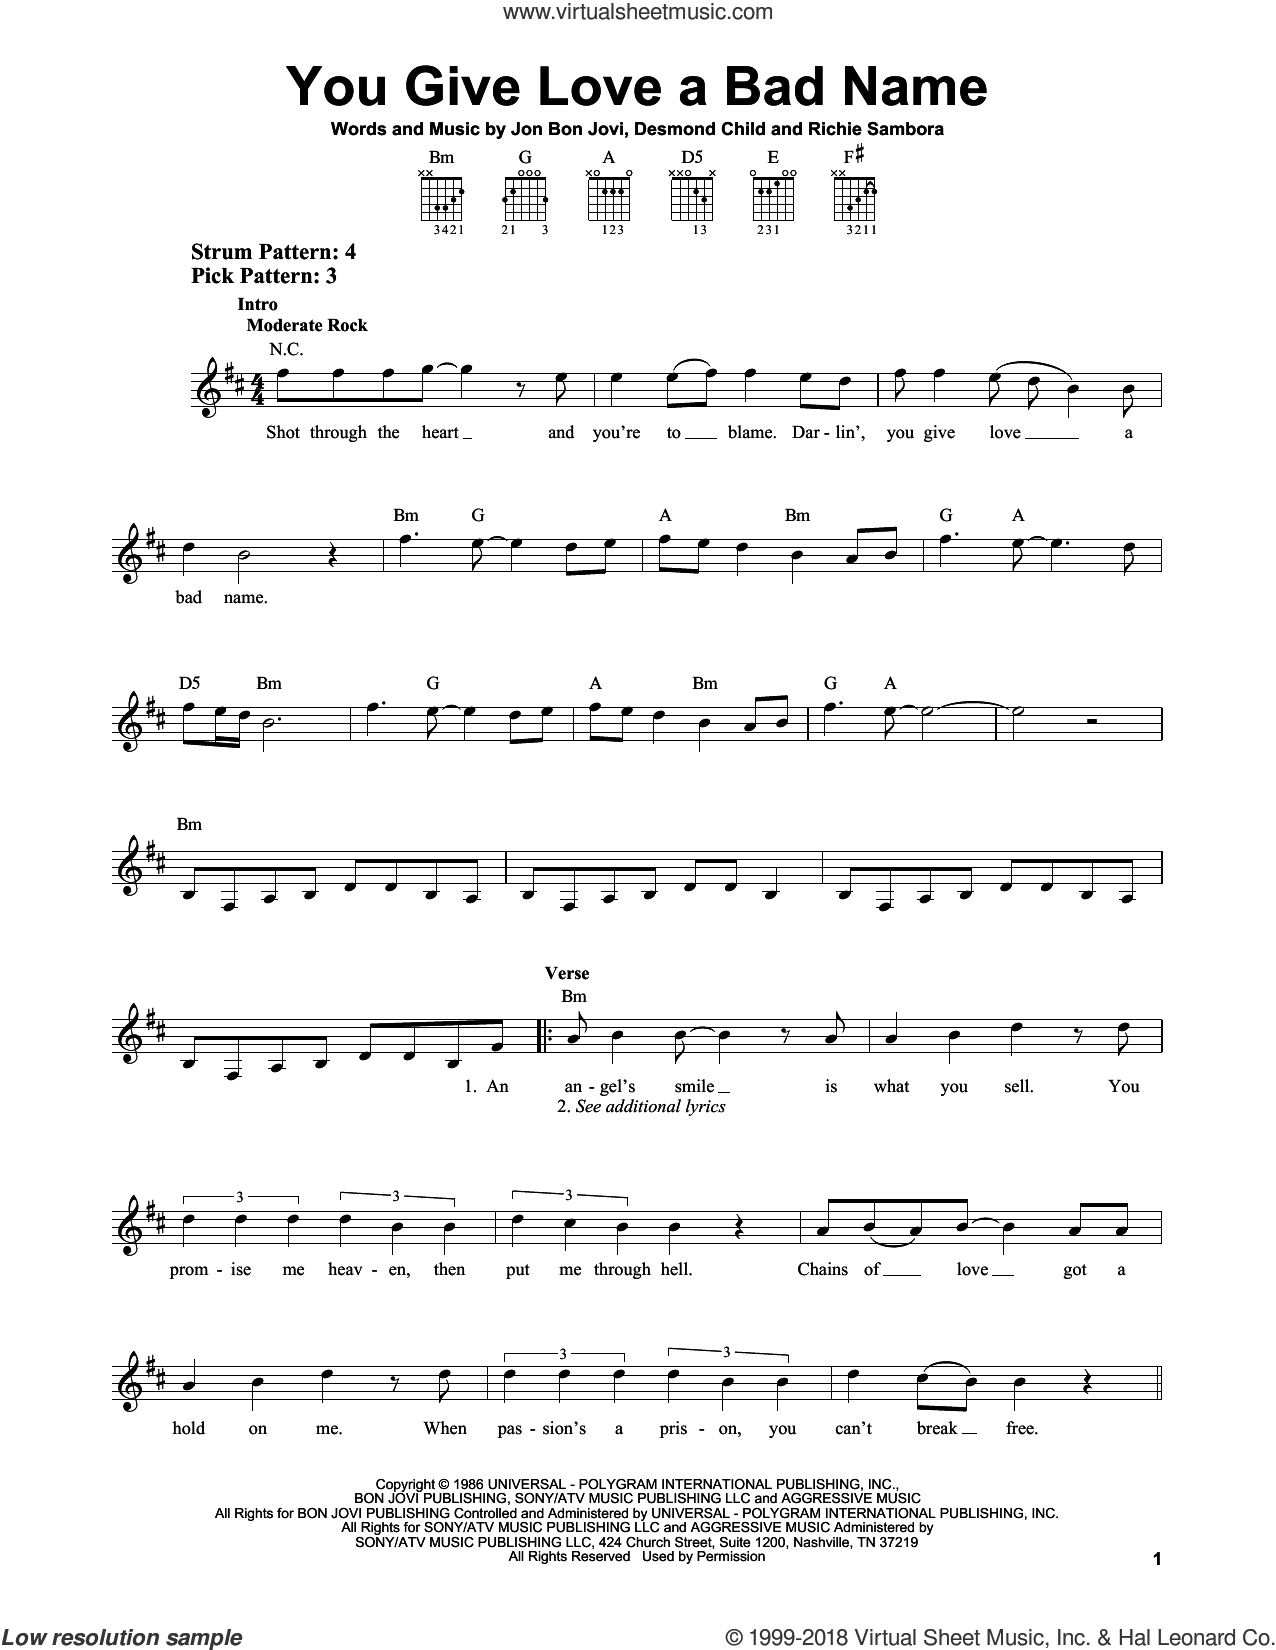 You Give Love A Bad Name sheet music for guitar solo (chords) by Bon Jovi, Blake Lewis, Desmond Child and Richie Sambora, easy guitar (chords). Score Image Preview.